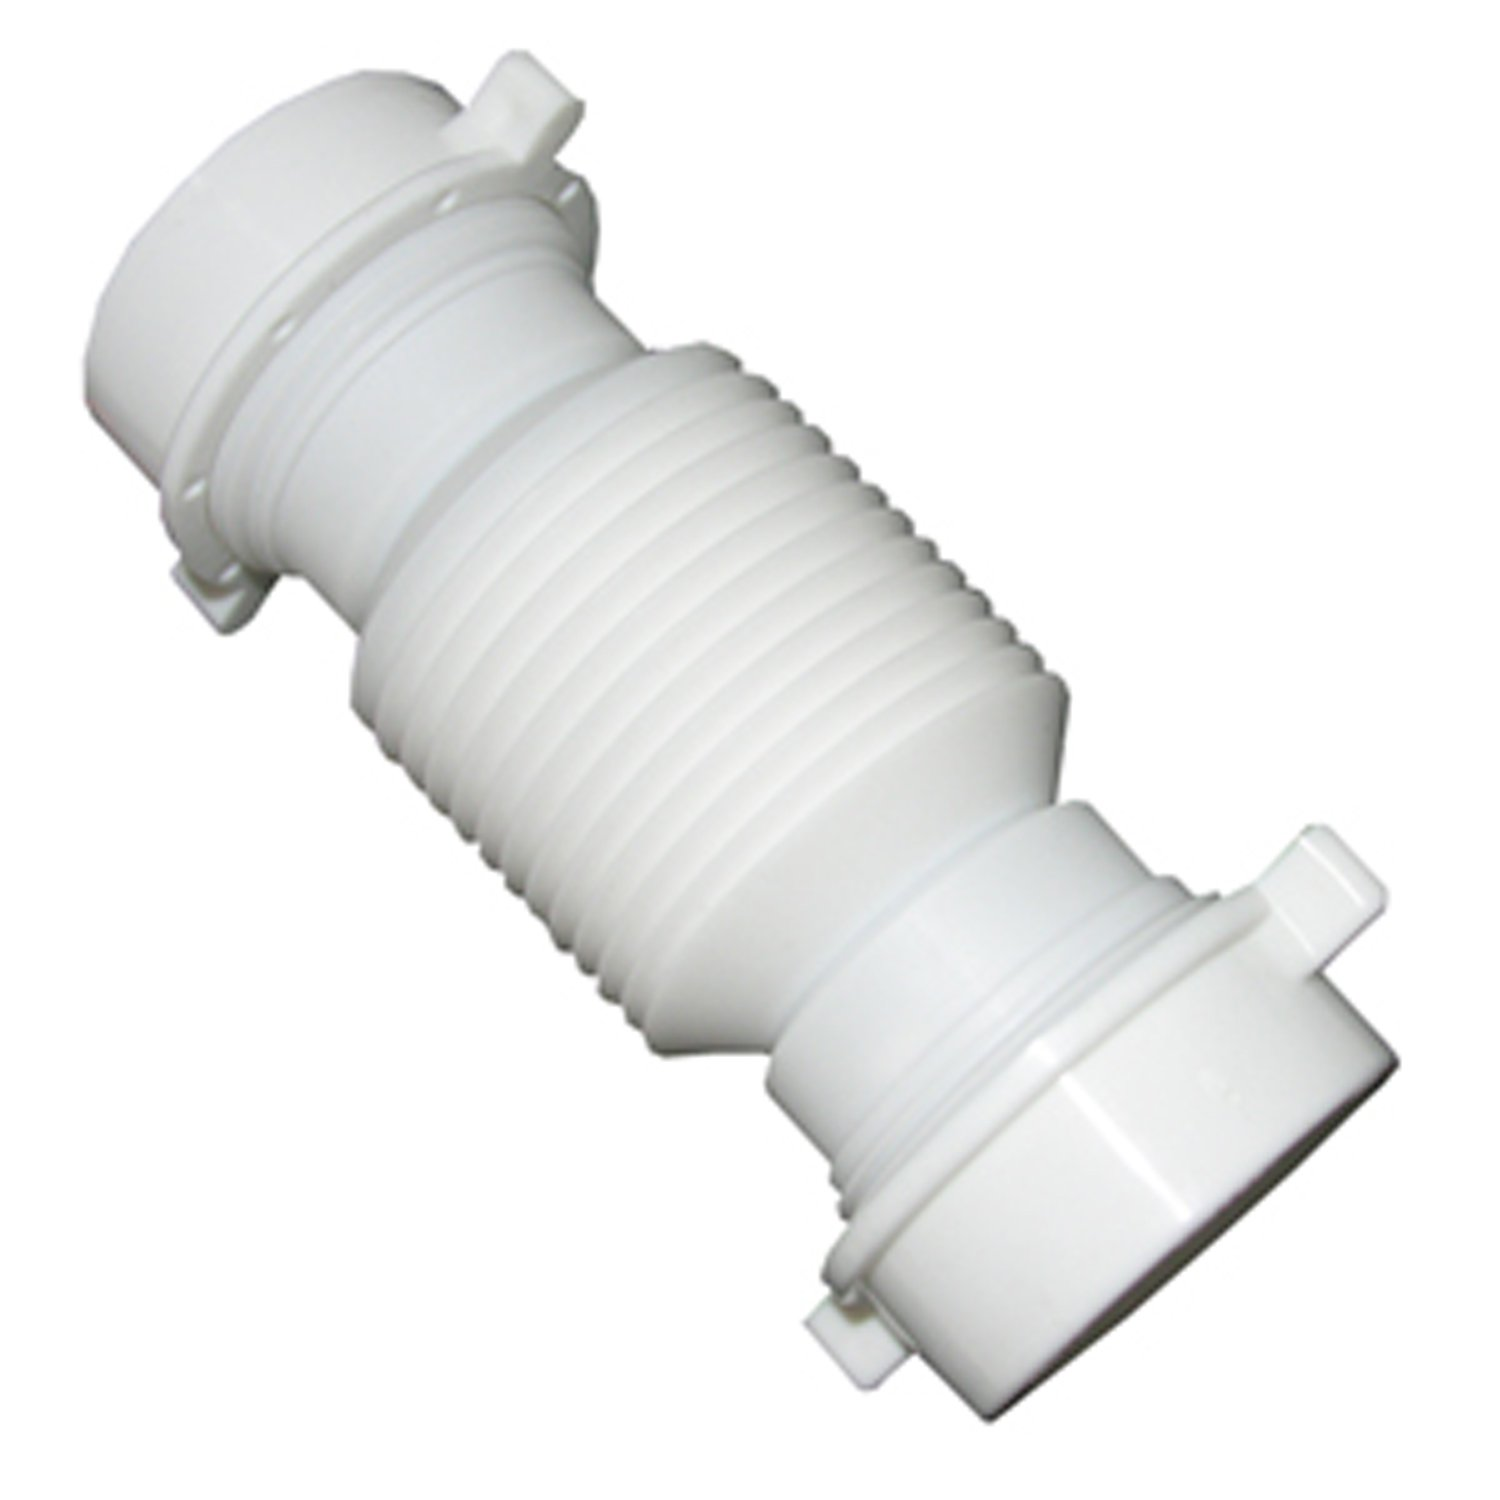 LASCO 03-4355 White Plastic Tubular 1-1/2-Inch Slip Joint Coupling Flexible and Extendable with Nuts and Washers